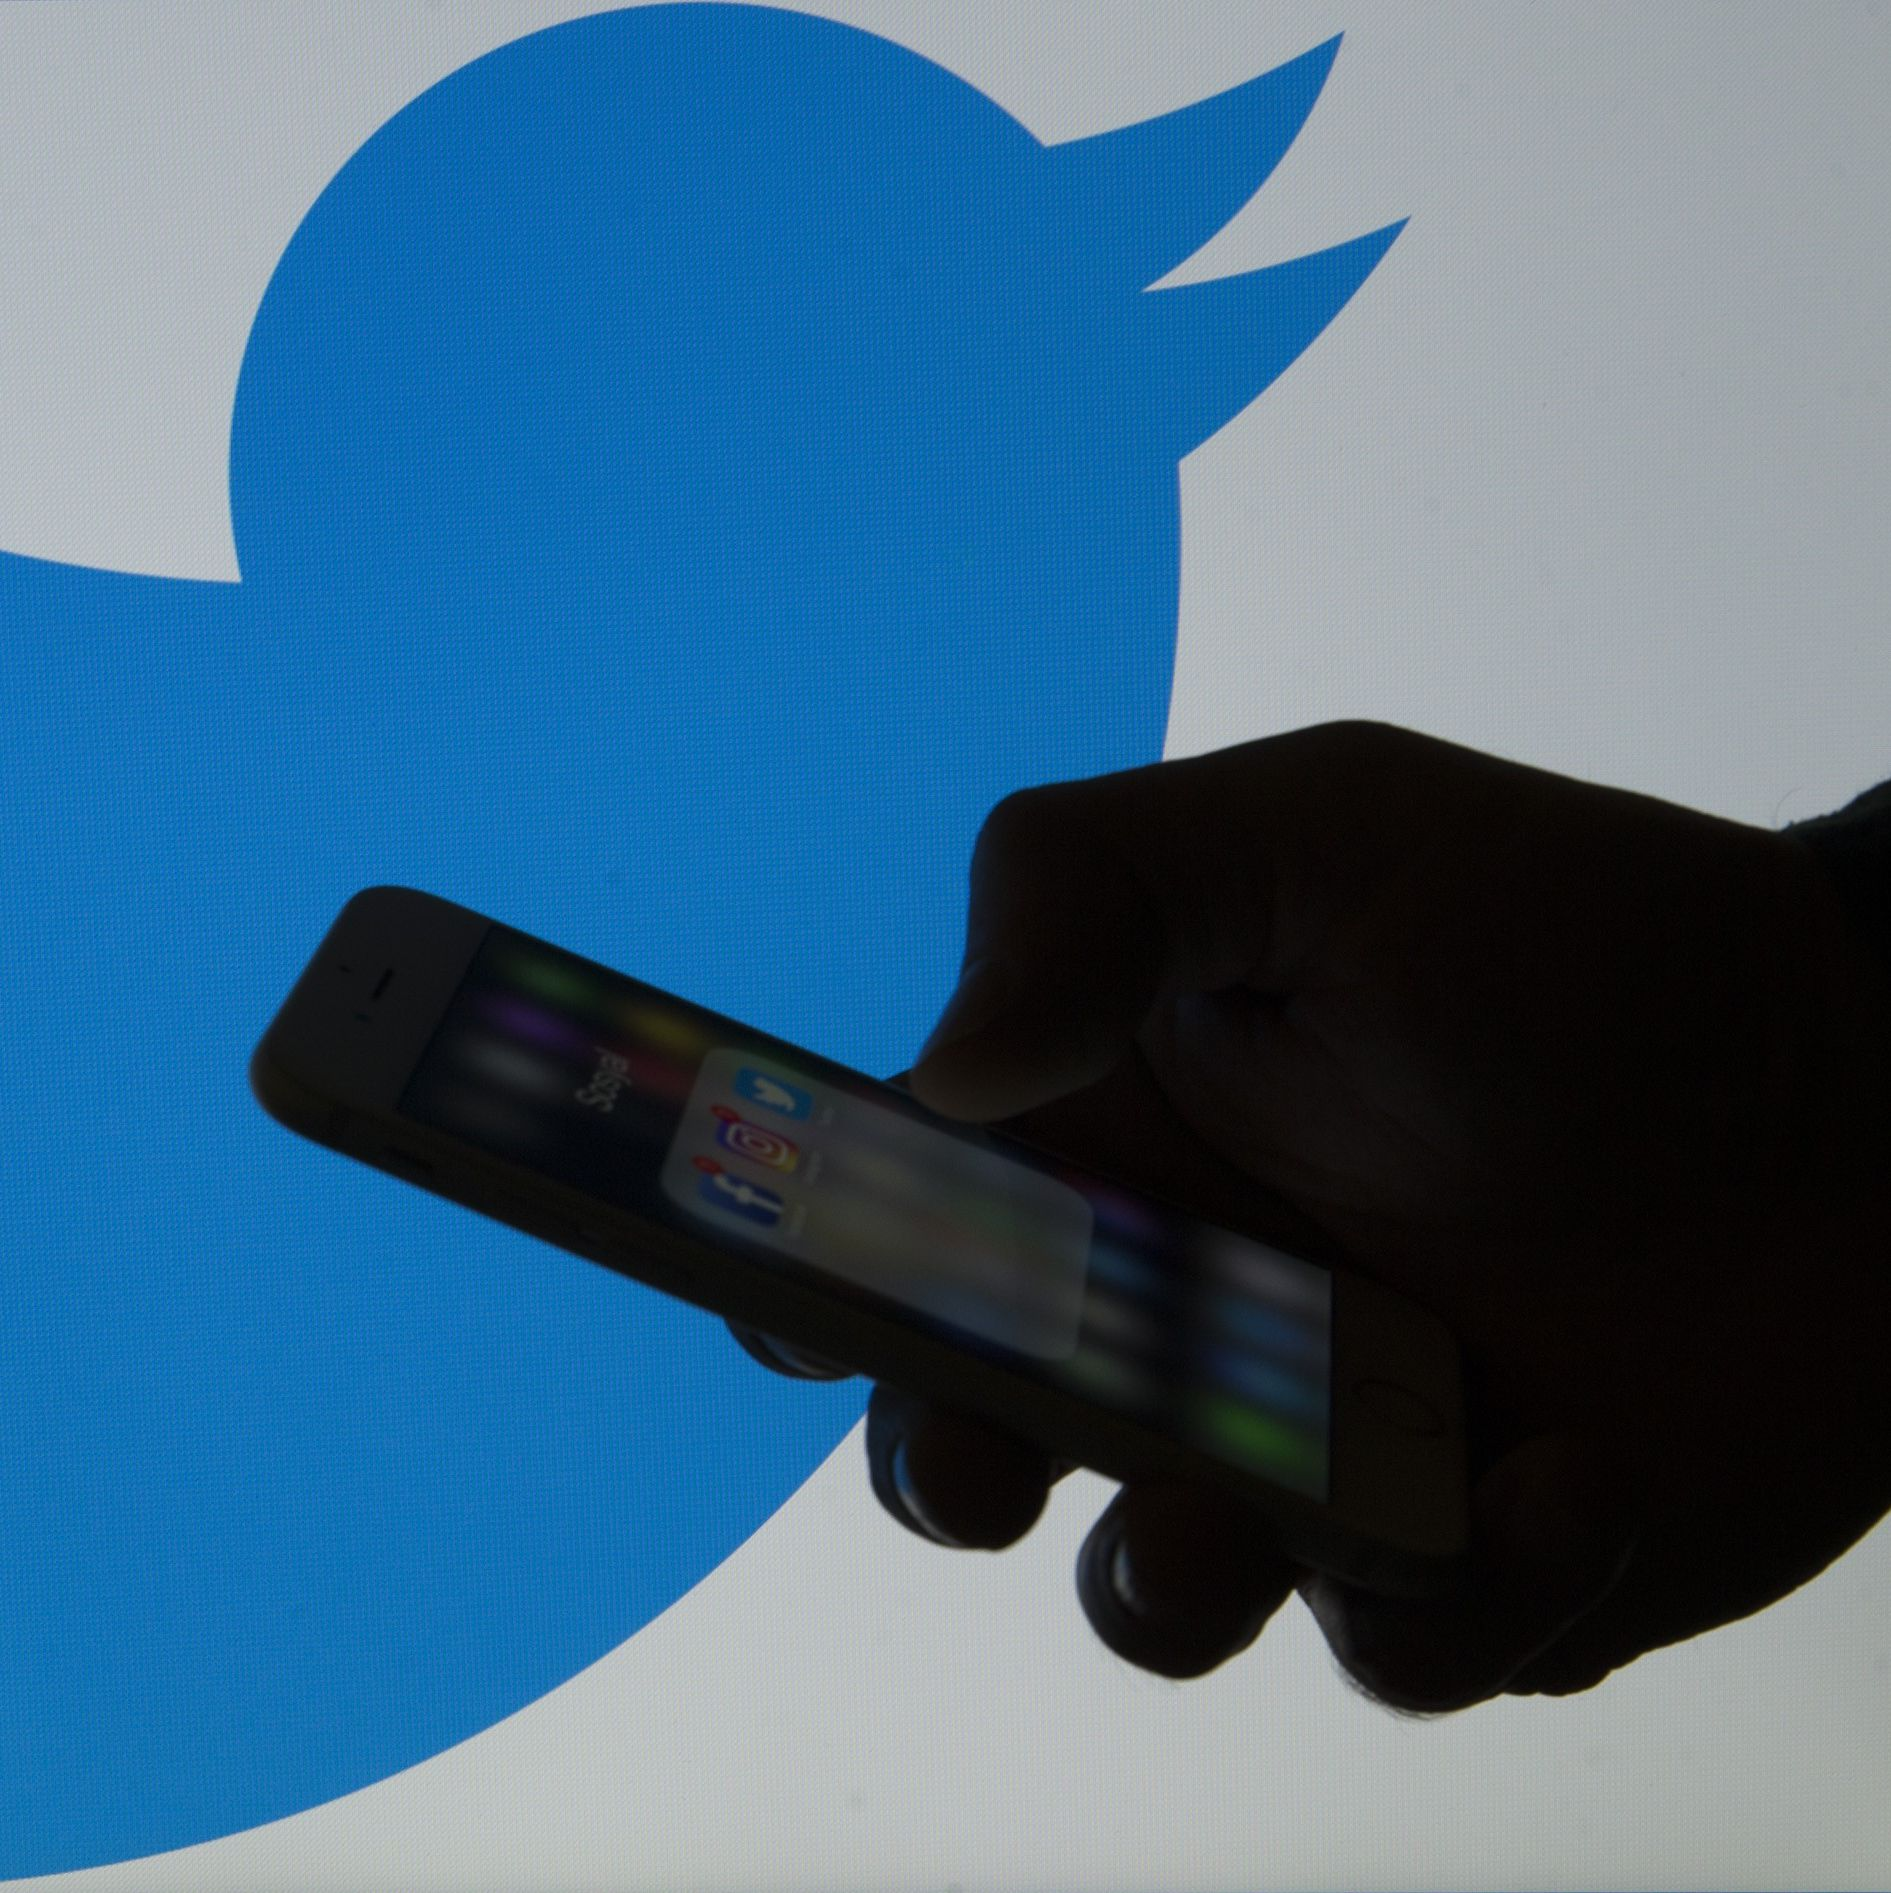 Twitter Wants To Stop Pile-Ons With A 'Clarification' Button. Here's How It Would Work